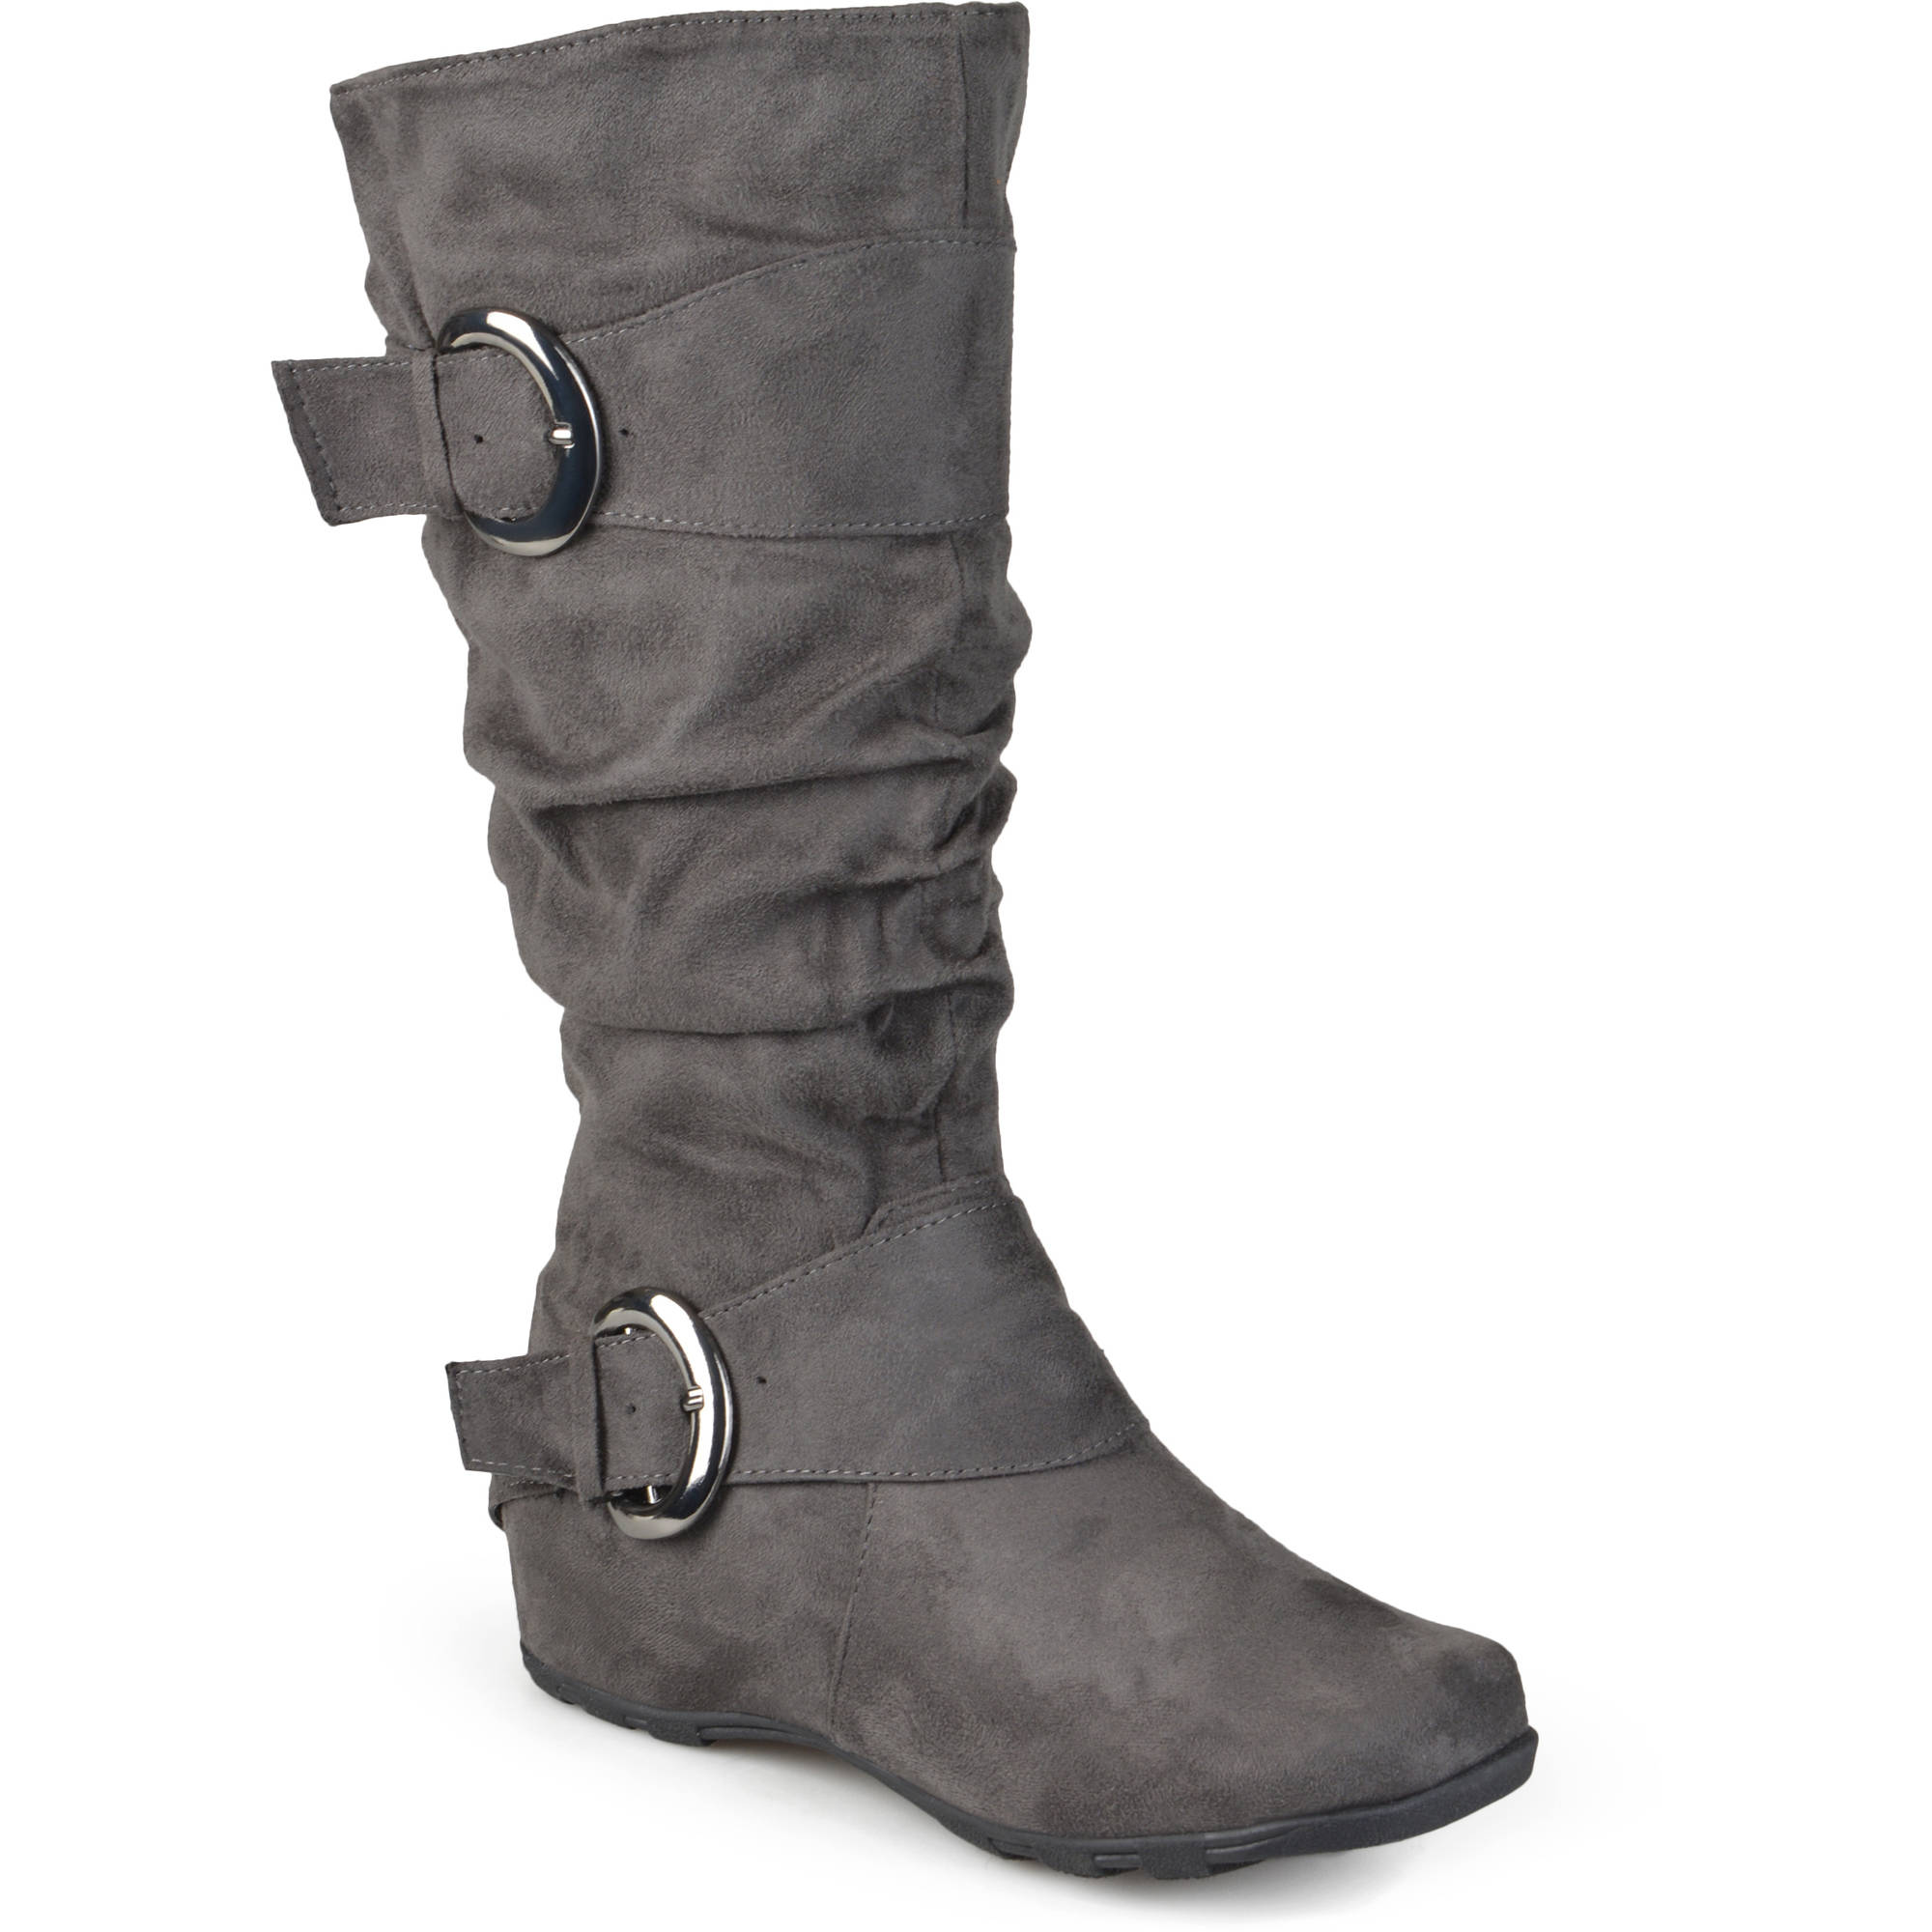 Women's Slouchy Wide Calf Boots